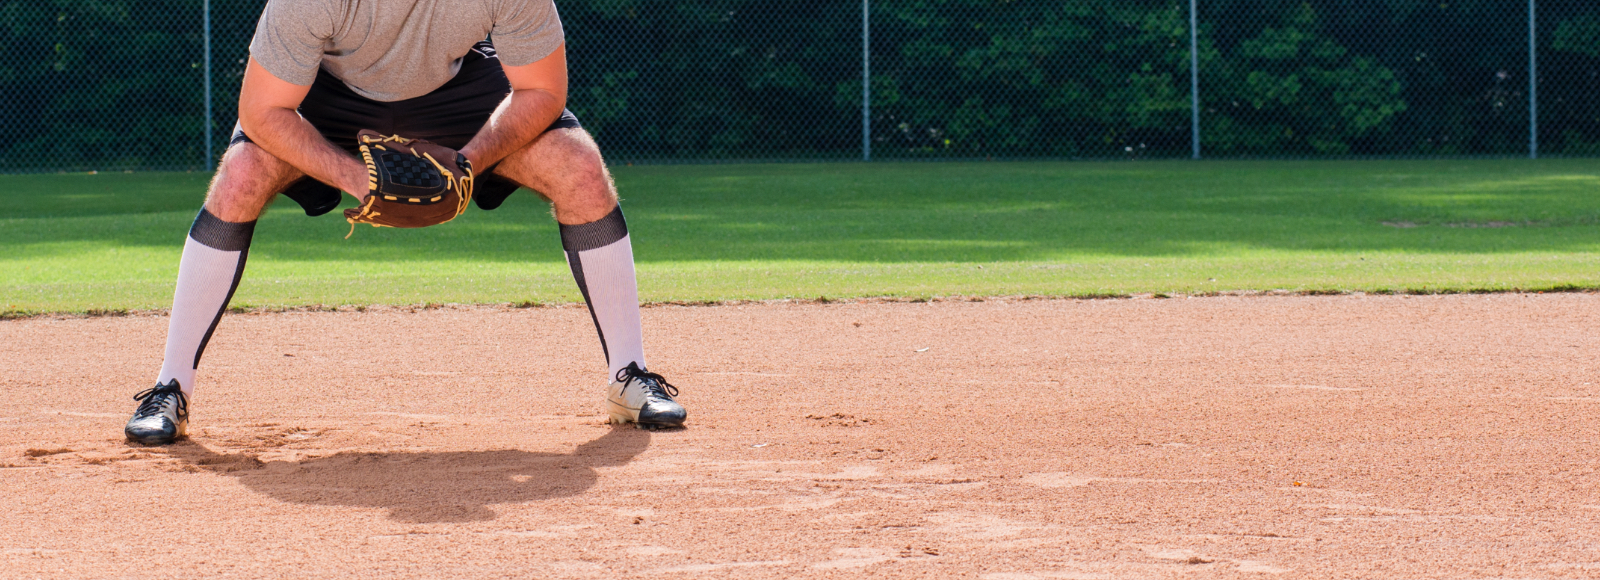 A man stands ready with a baseball glove on a baseball field wearing Sof Sole® baseball stirrup socks.